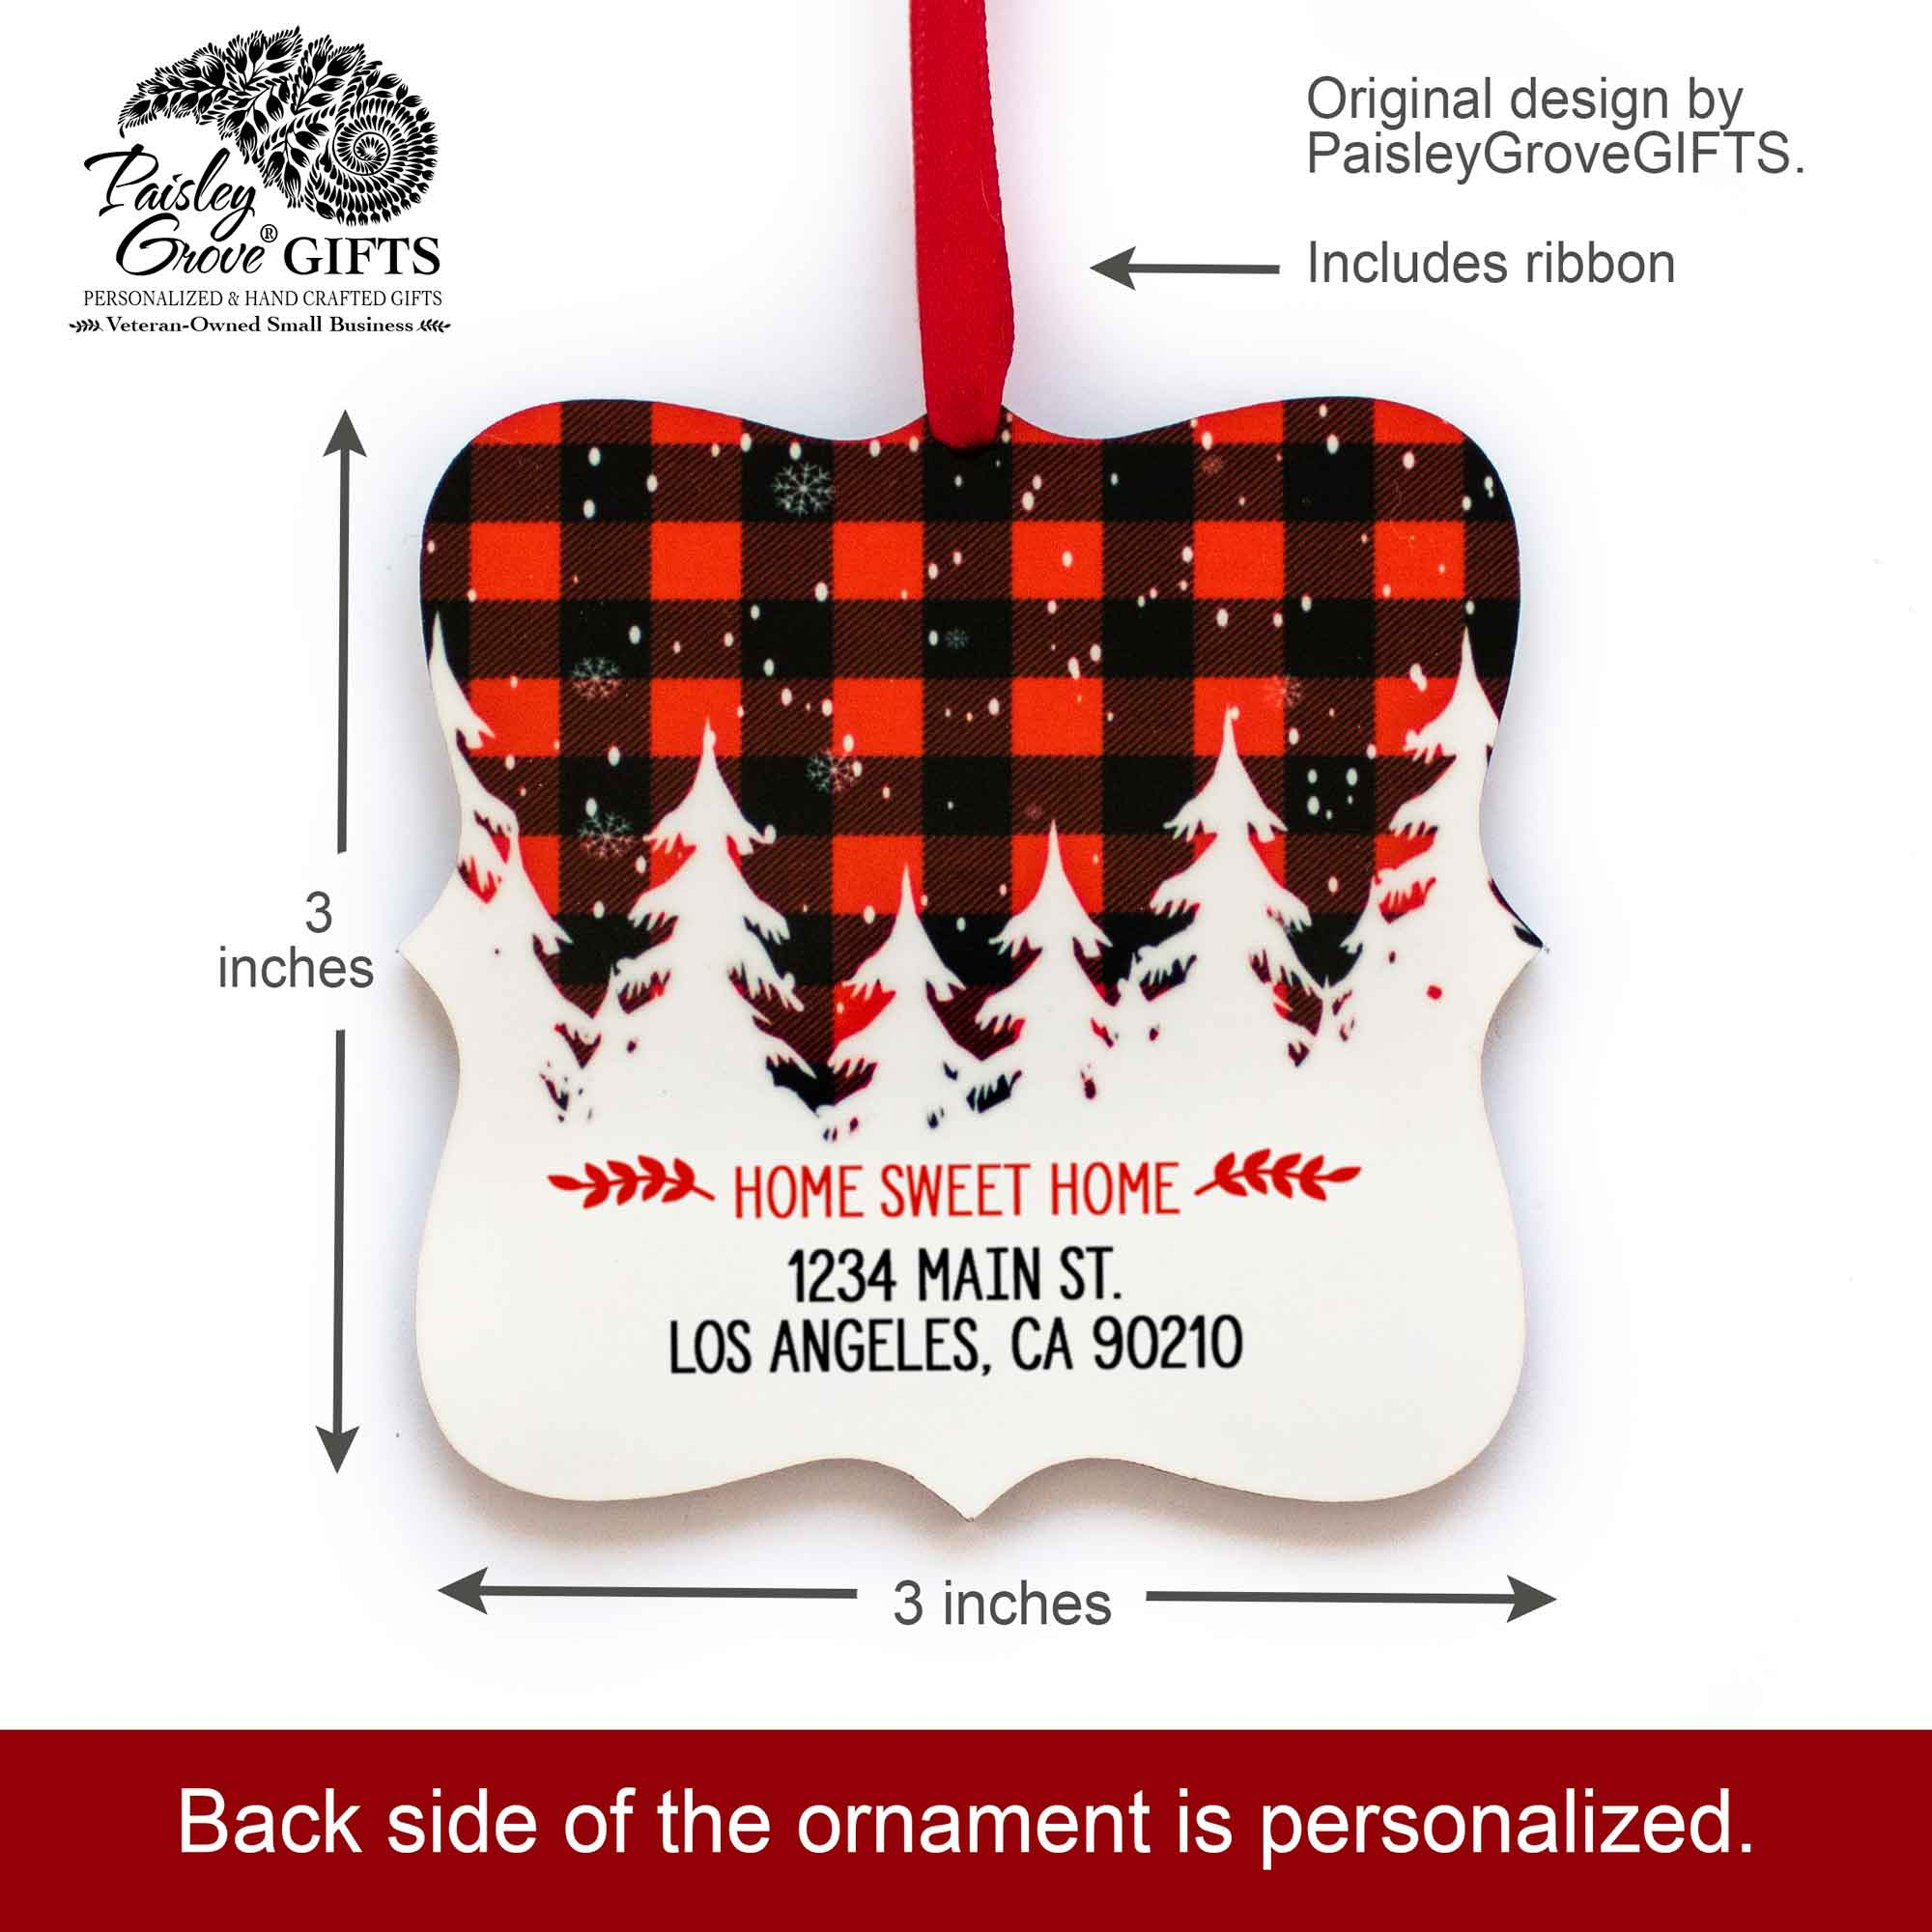 CopyrightPaisleyGroveGIFTS S502h 3x3 inch Holiday Ornament Sentimental New Homeowner Custom Christmas Keepsake